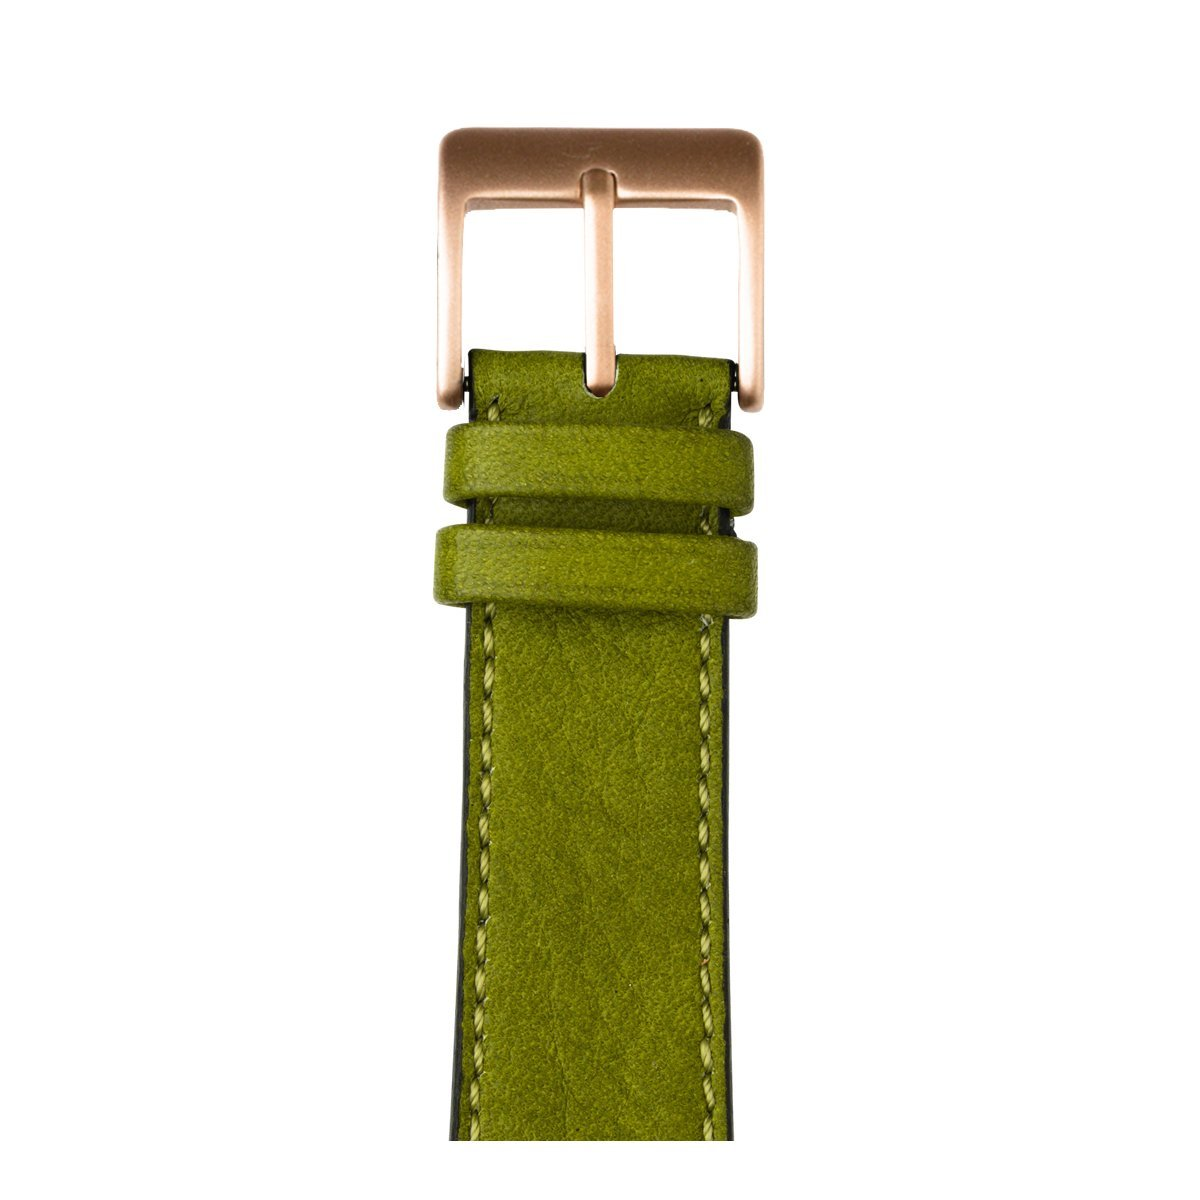 Roobaya | Premium Sauvage Leather Apple Watch Band in Moss Green | Includes Adapters matching the Color of the Apple Watch, Case Color:Rose Gold Aluminum, Size:38 mm